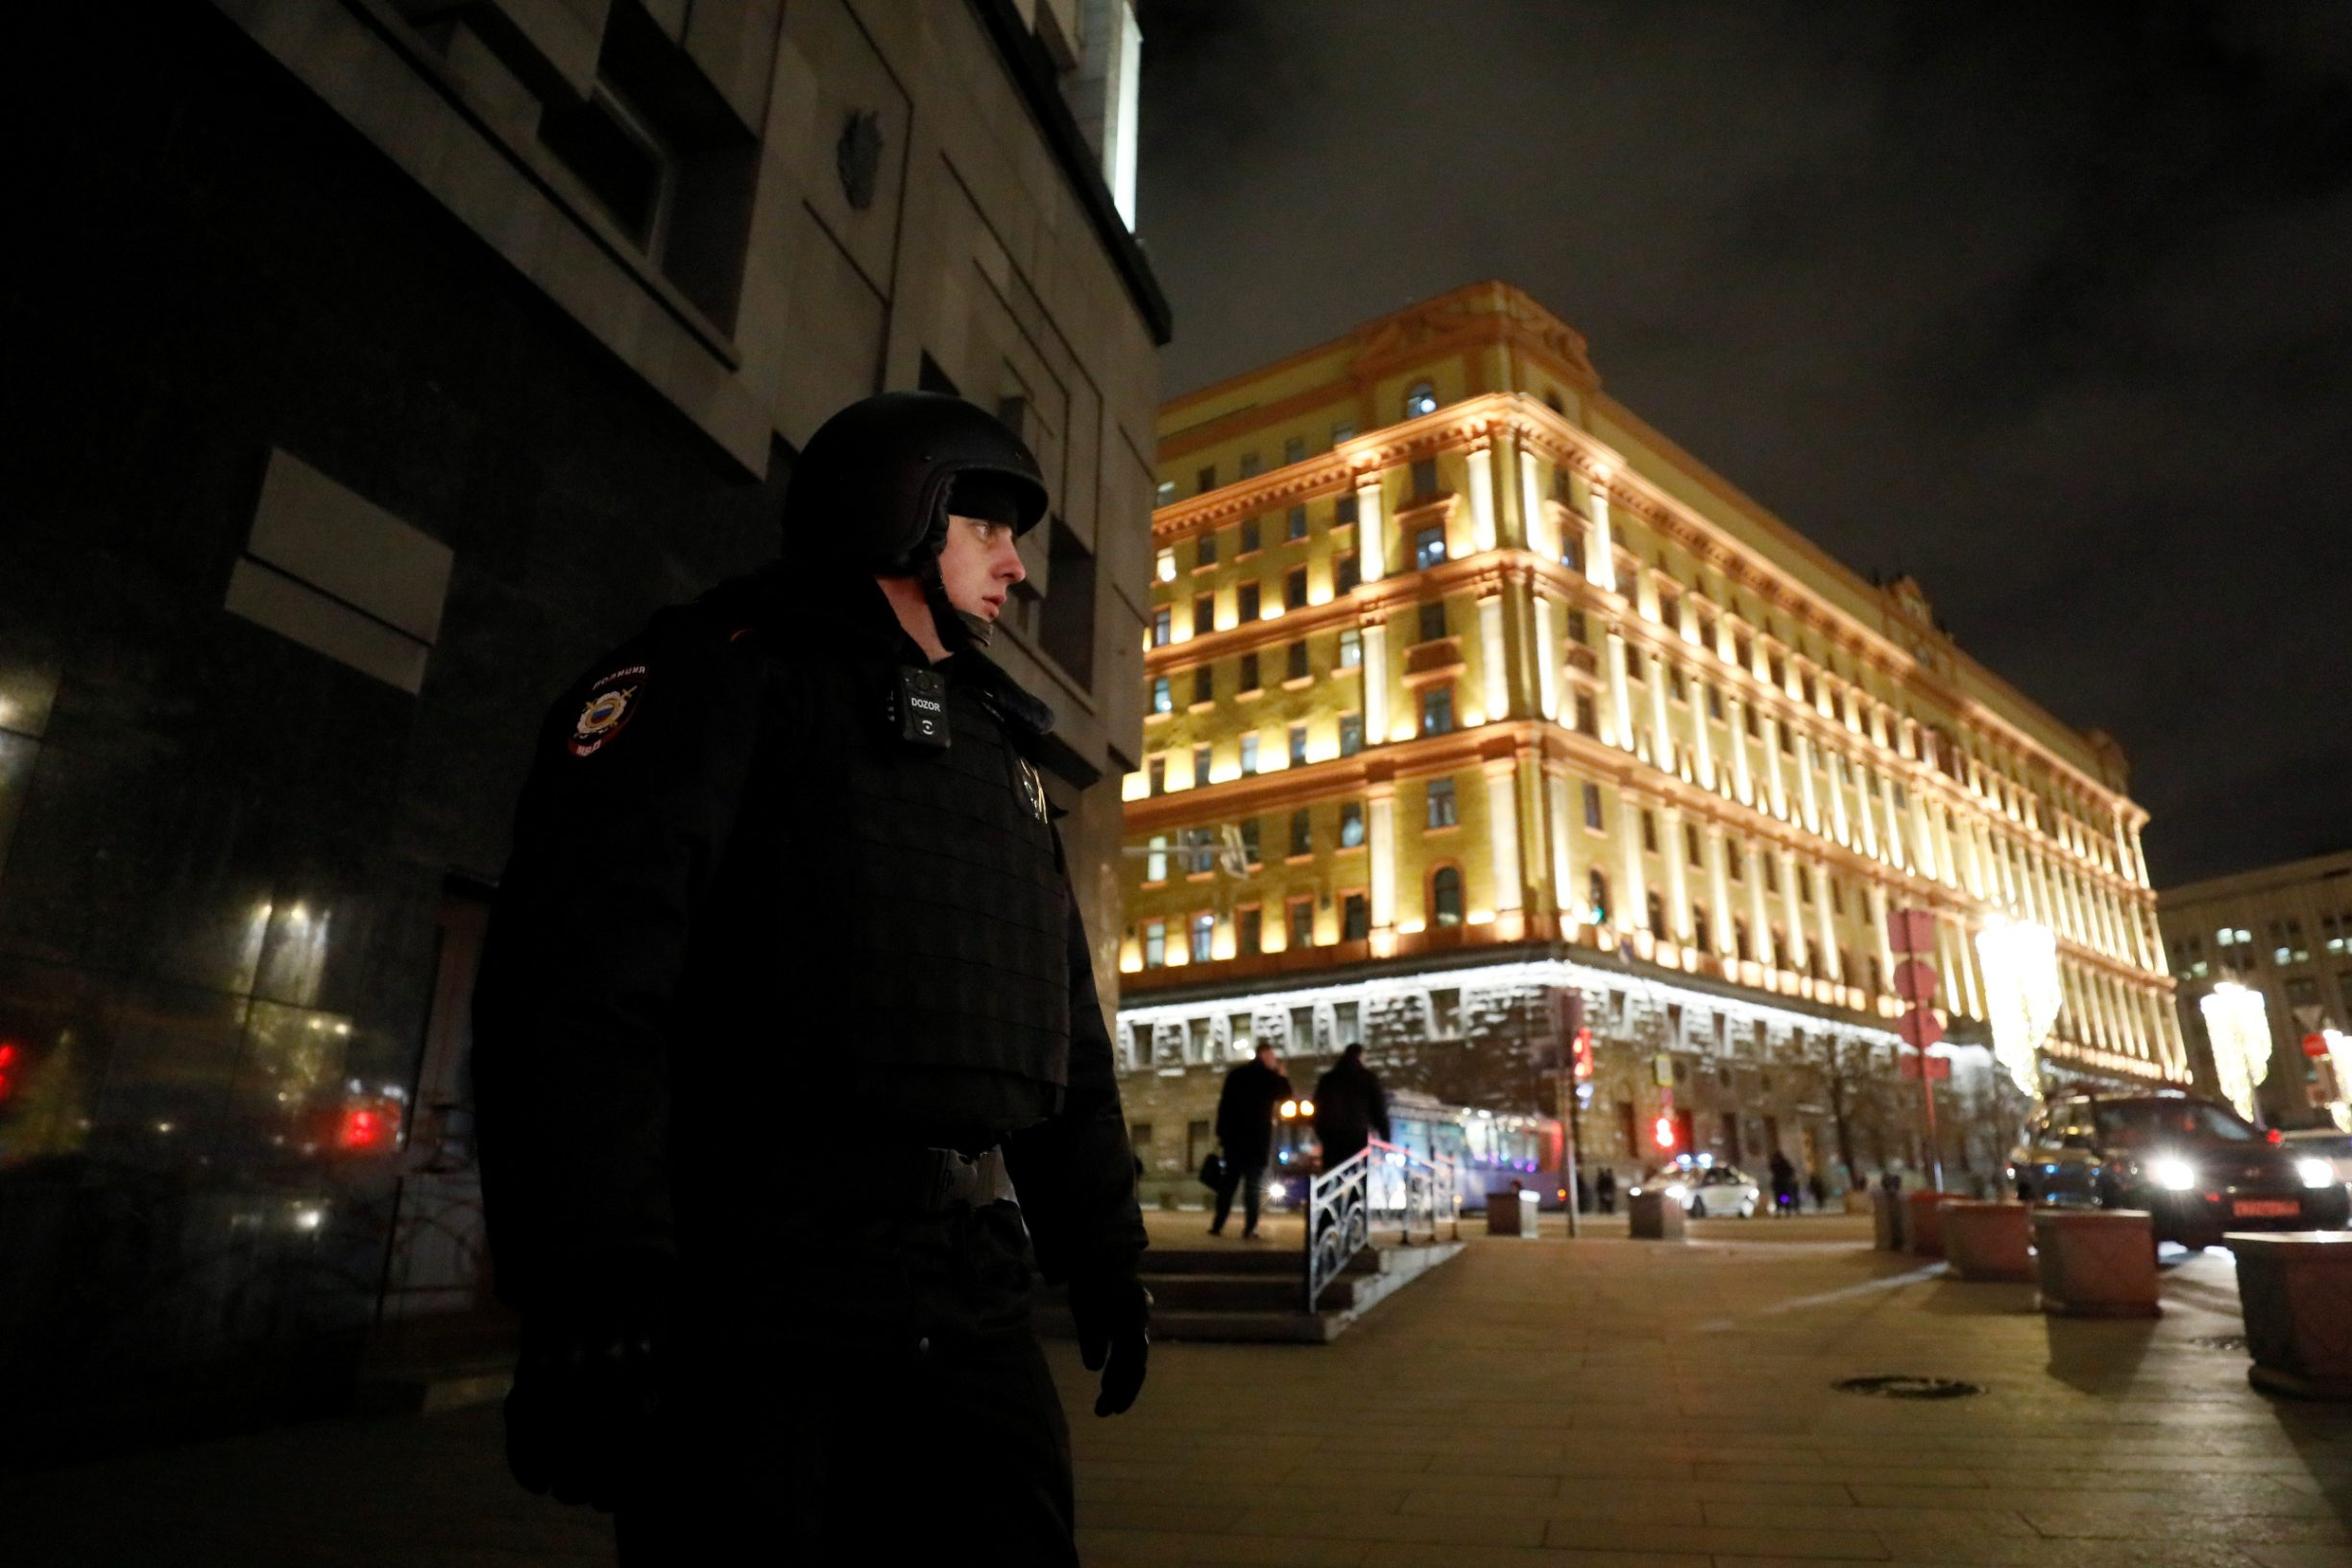 A security officer blocks a street near the Federal Security Service (FSB) building after a shooting incident, in Moscow, Russia December 19, 2019. REUTERS/Shamil Zhumatov